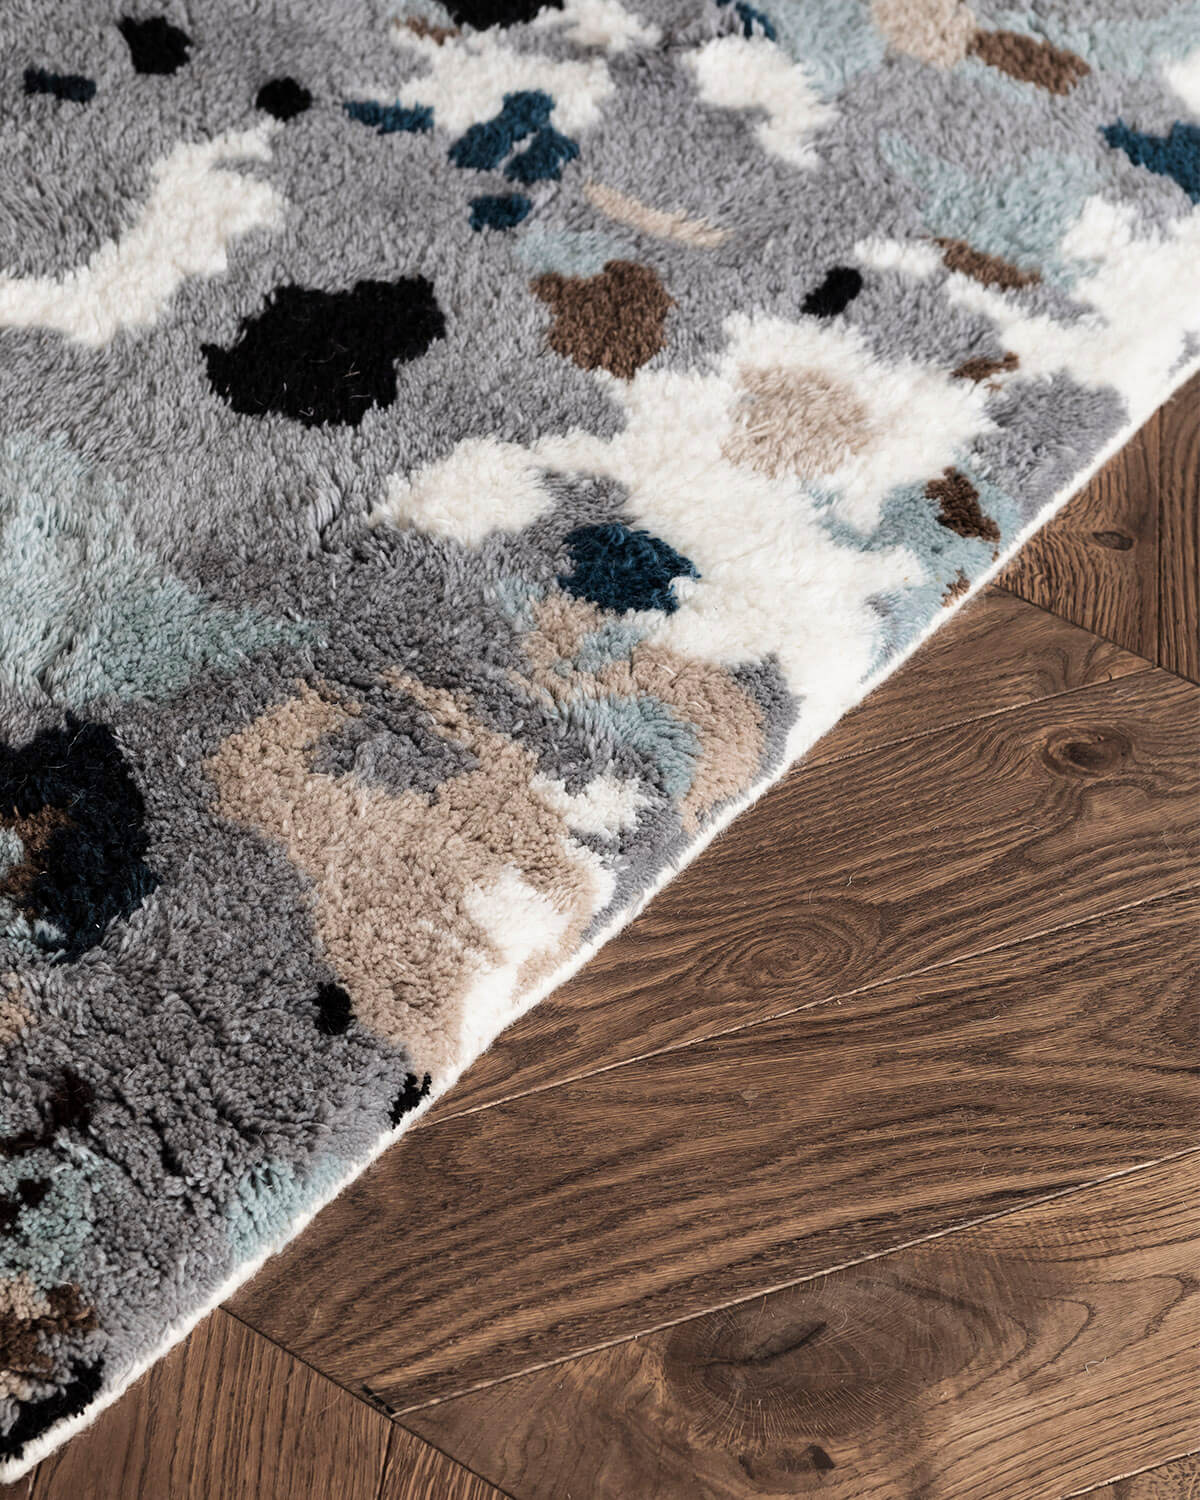 Close-up of the Archipelago rug in the color Gray, showing the edge and texture of the rug.